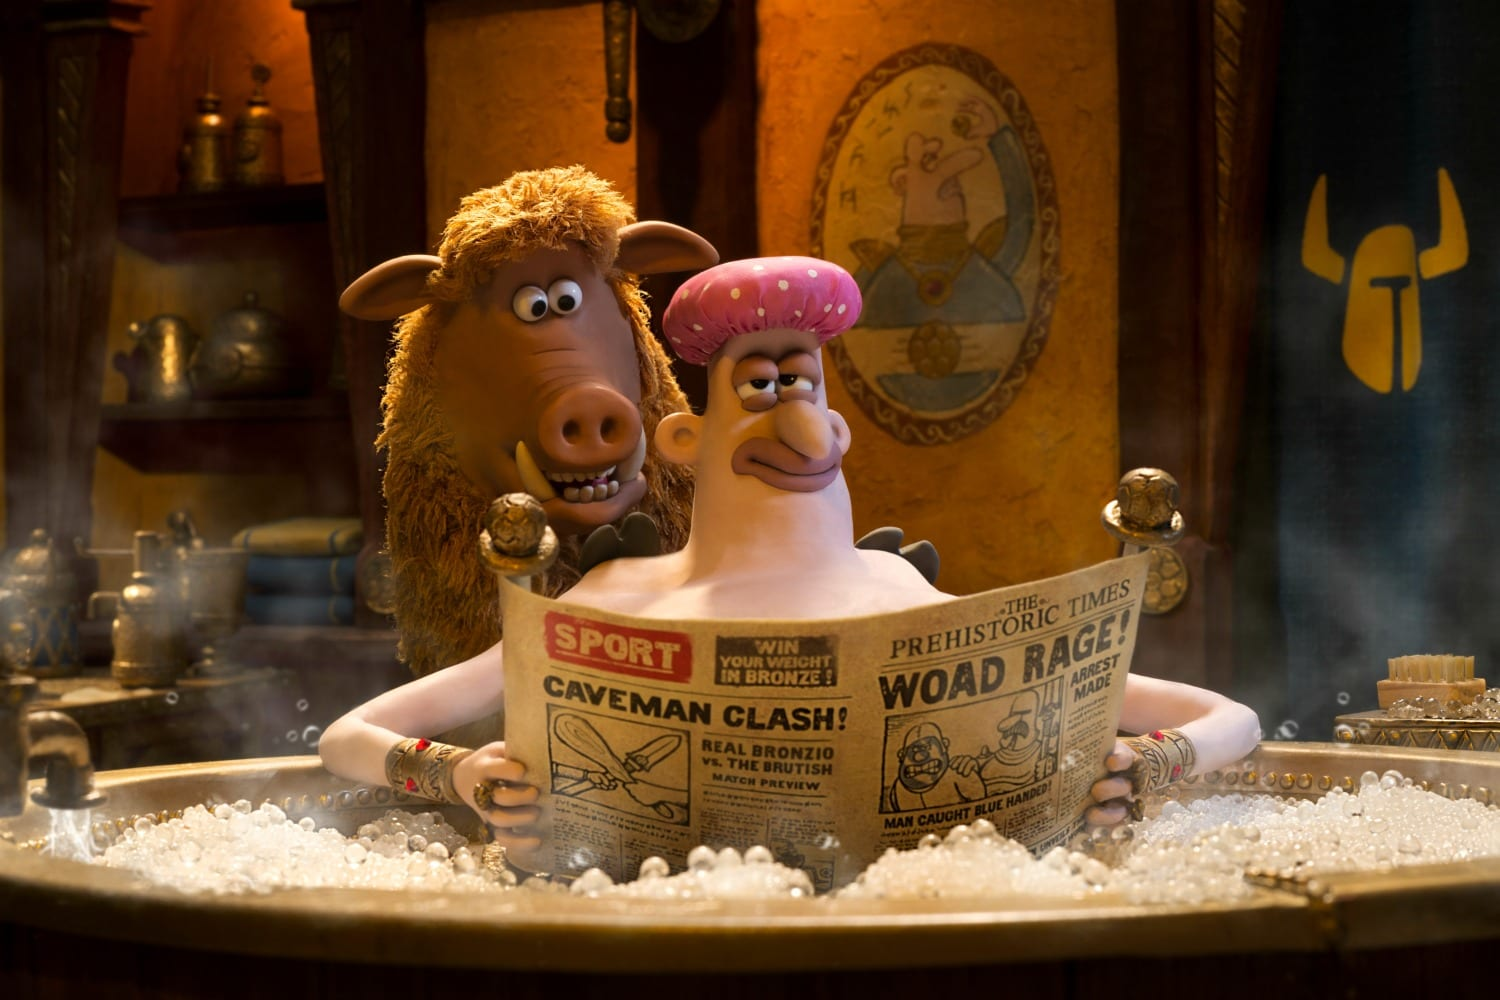 Early Man picture of caveman in hot tub